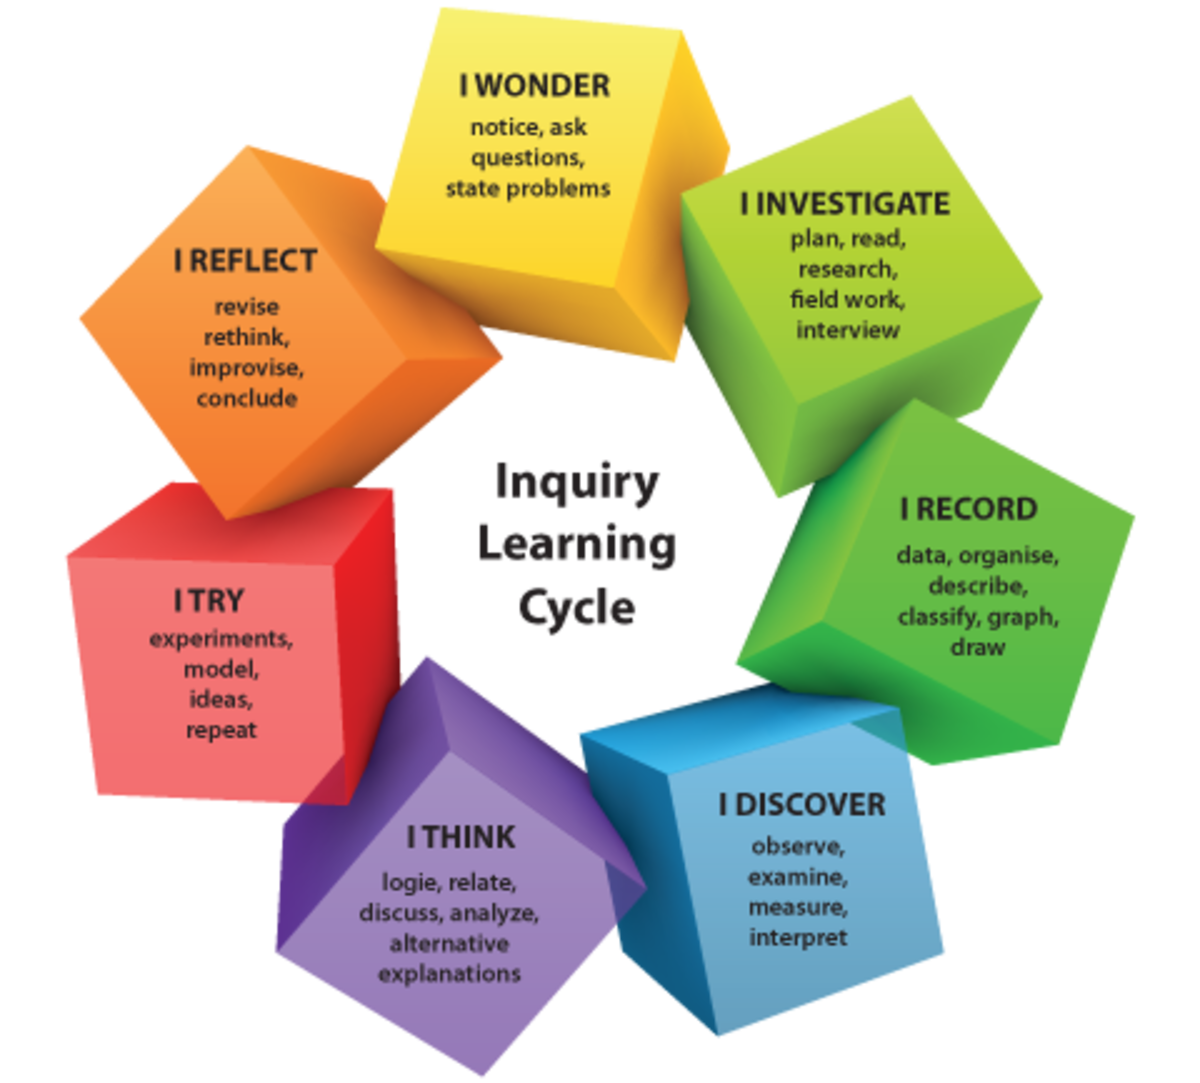 These are the key pillars upon which EBL is based. The studentsmay use these starters in order to stimulate learning and engage deeper with material presented to them.